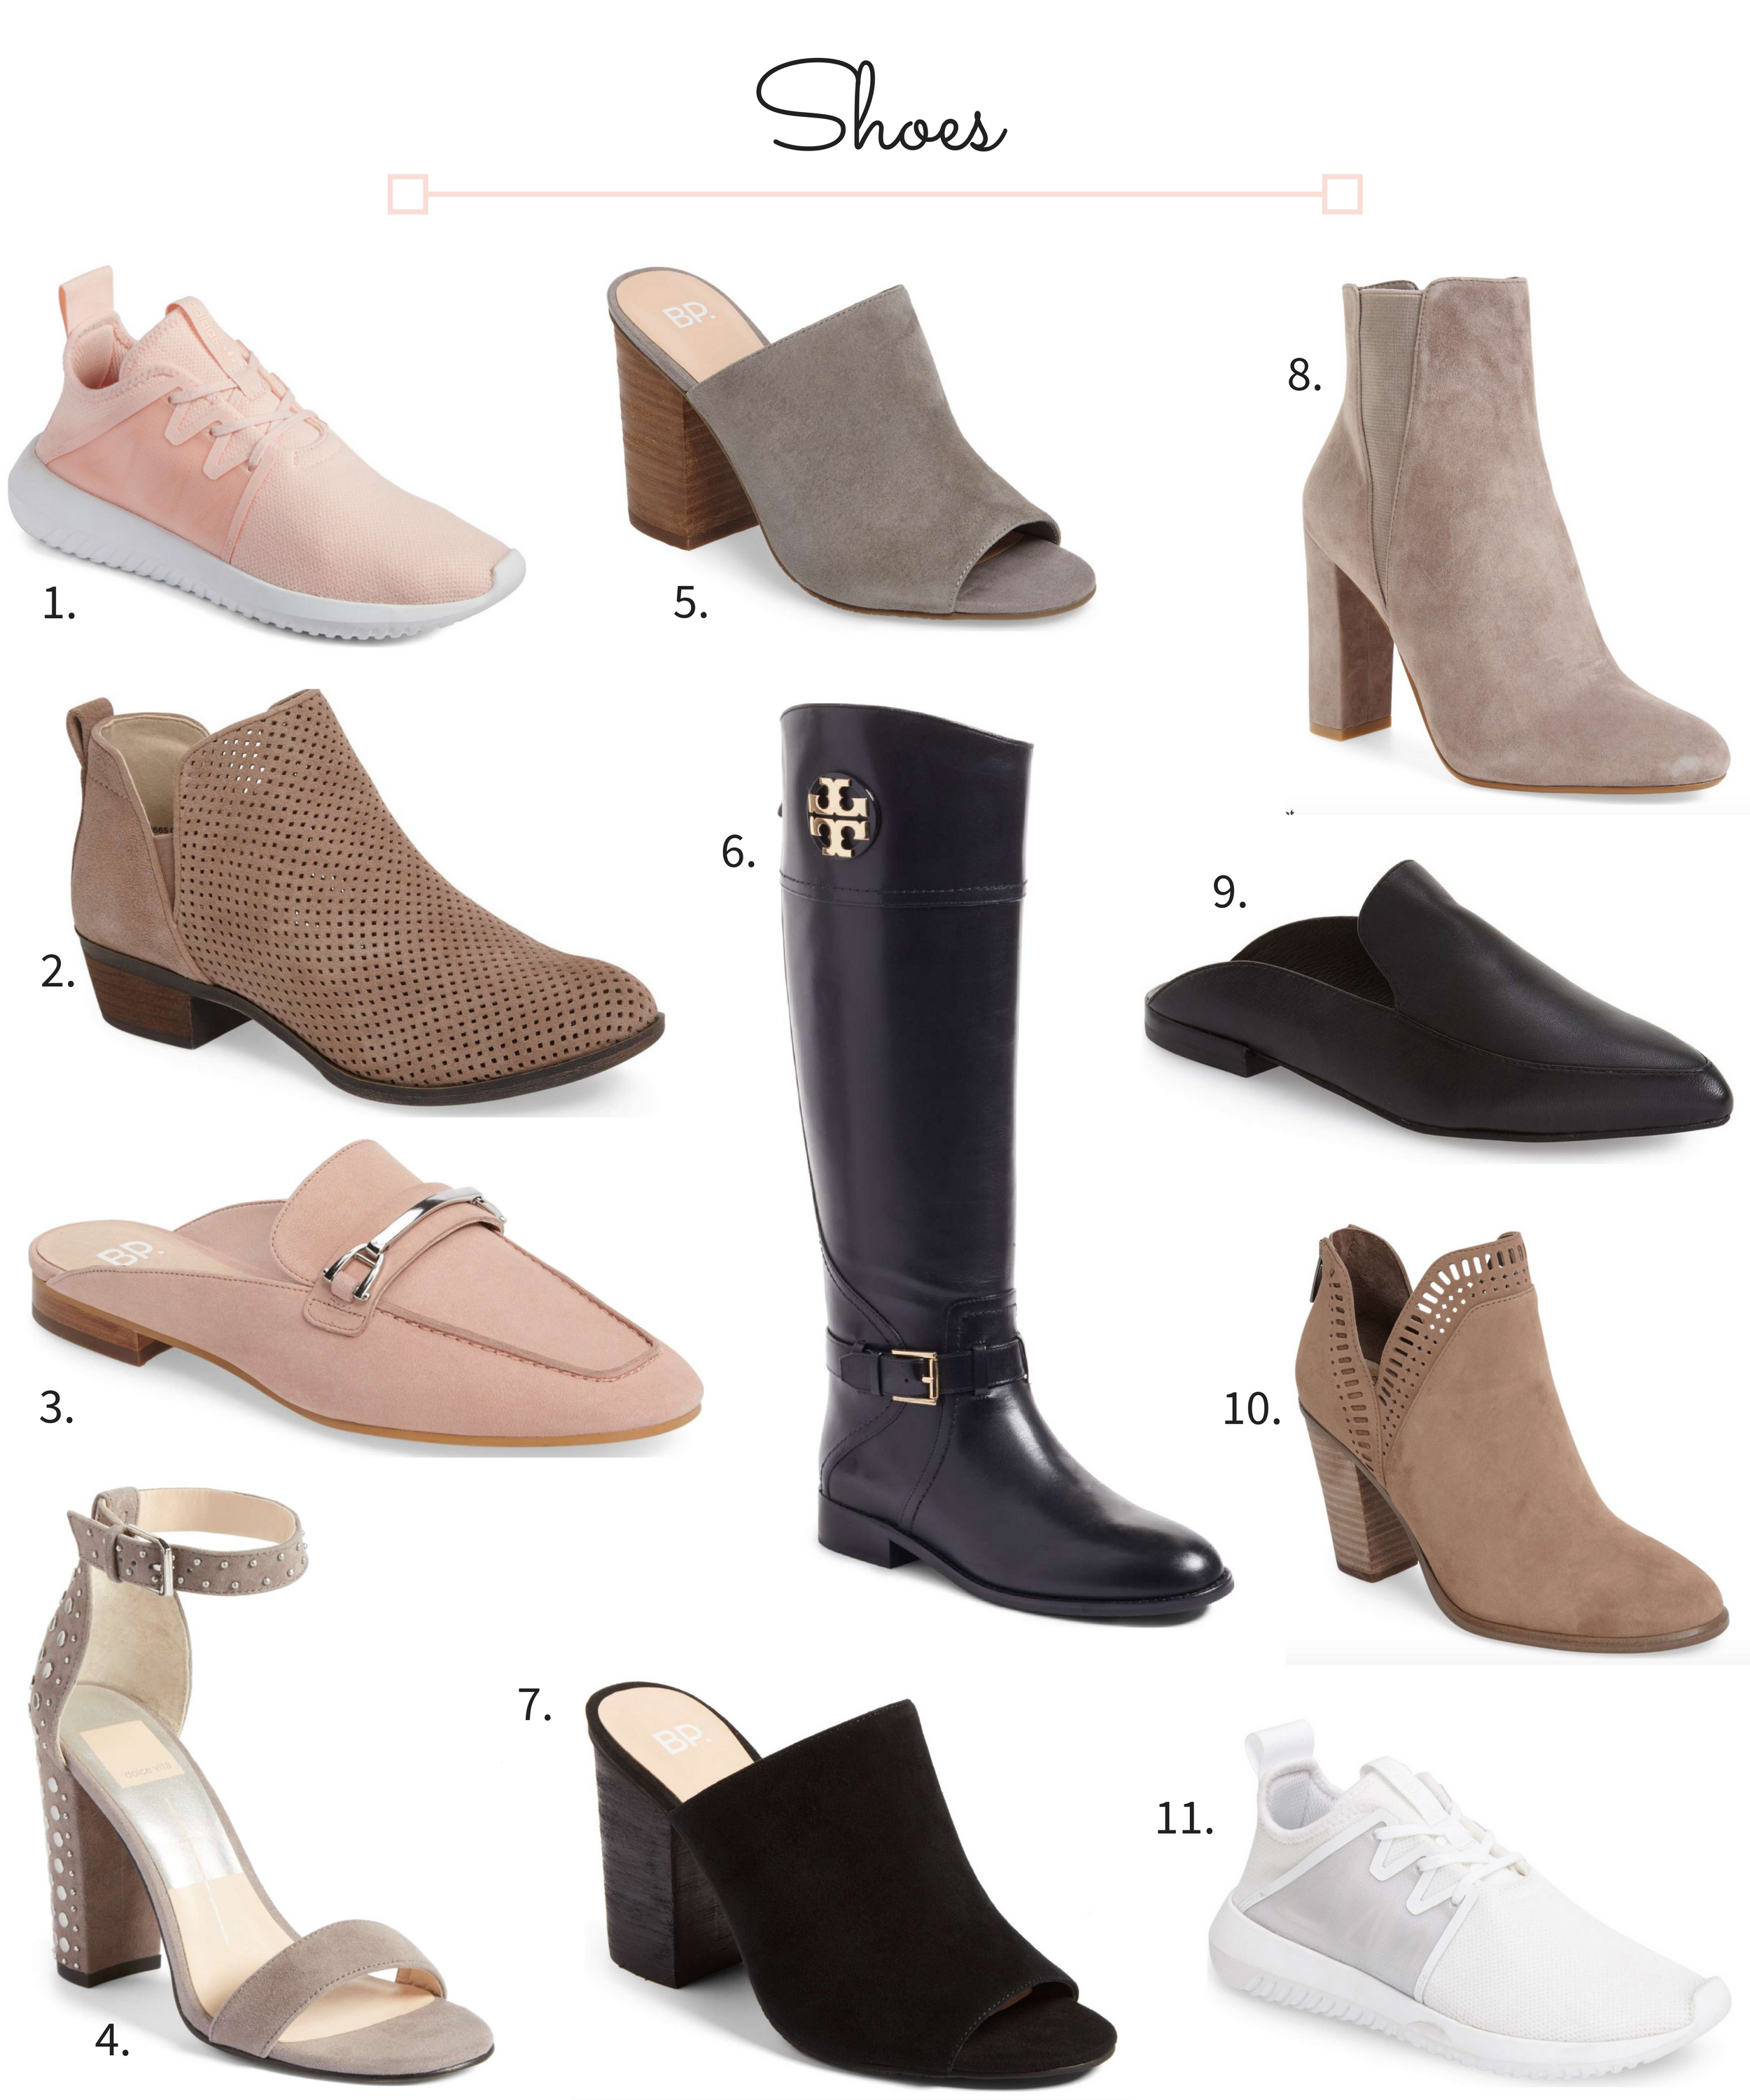 Nordstrom Anniversary Sale picks - shoes